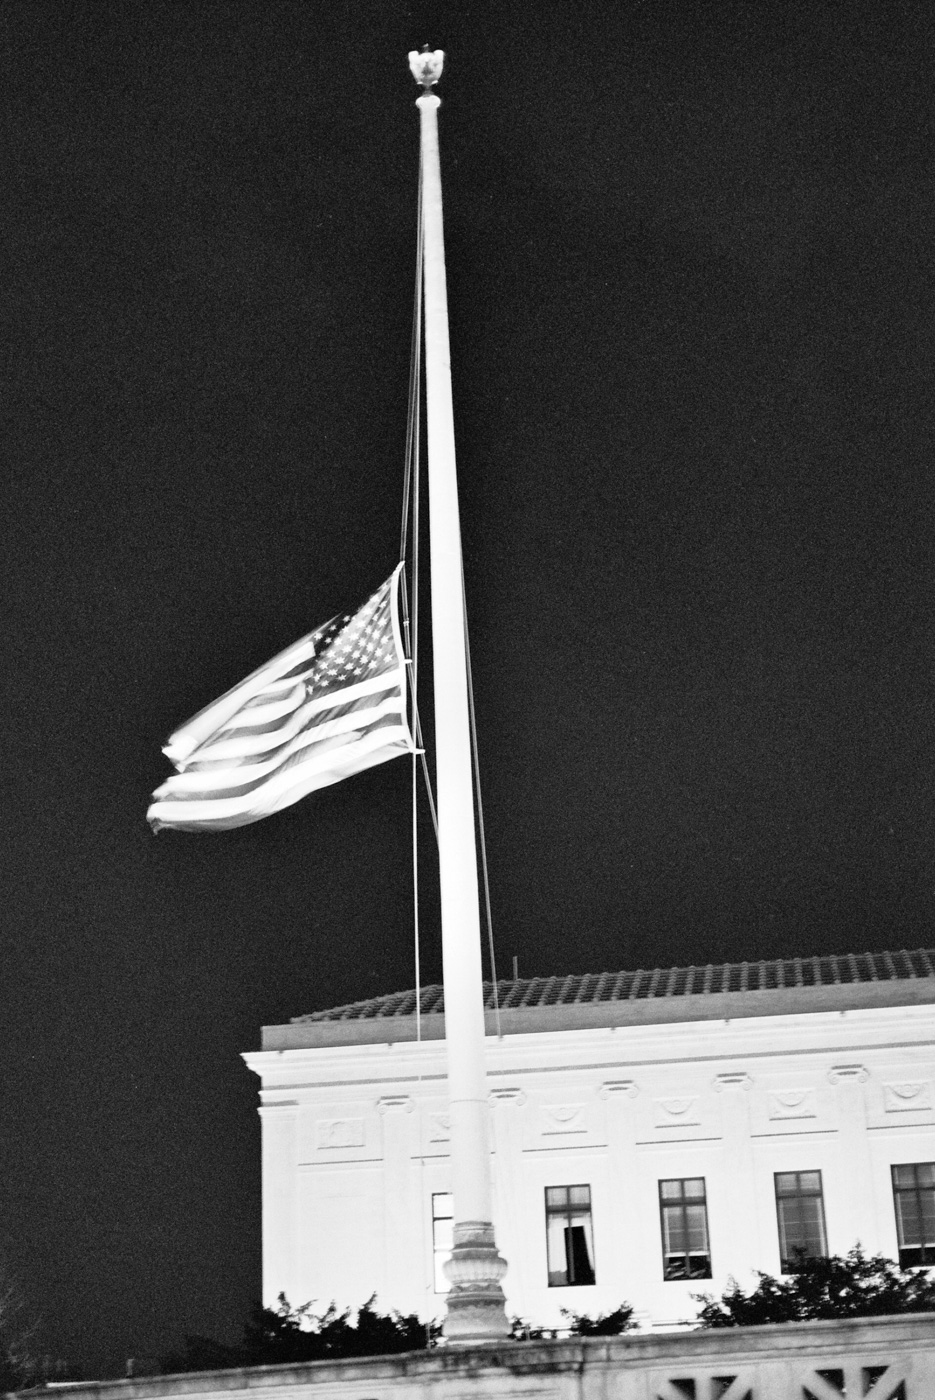 Flag at Half-Mast for the Stoneman Douglas High School Shooting